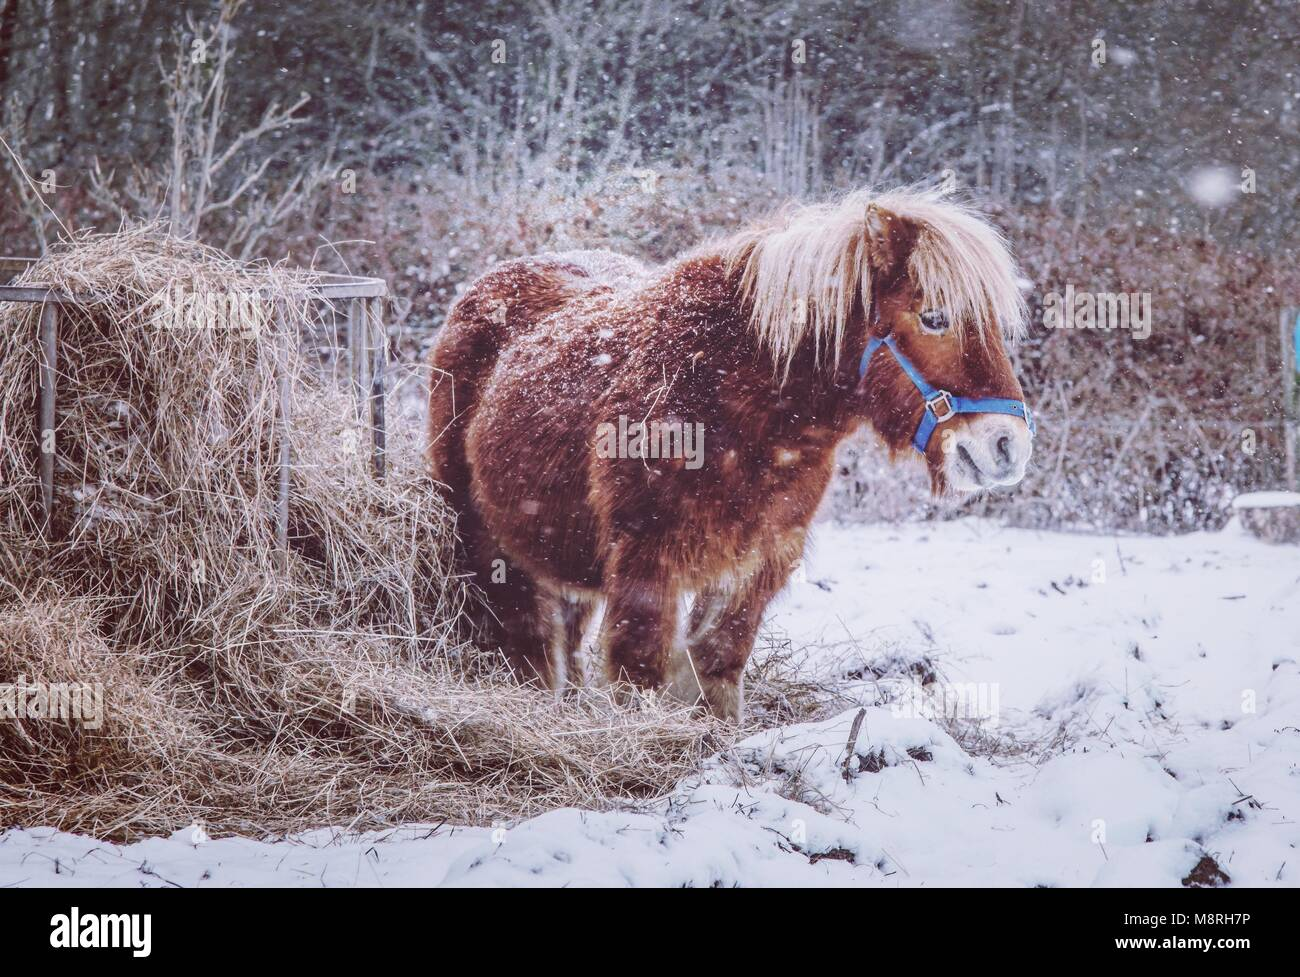 Poney dans la neige Photo Stock